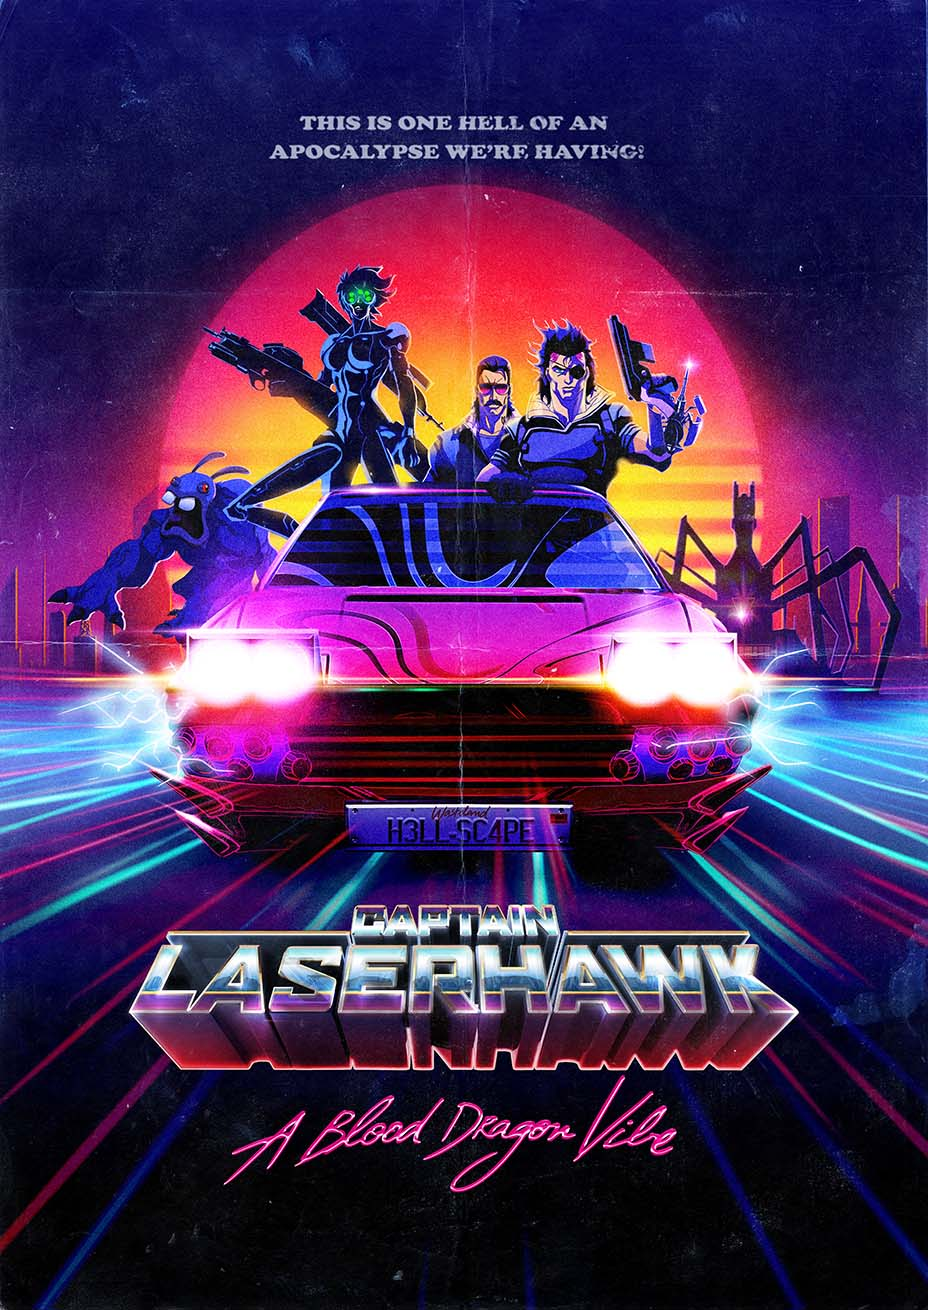 Netflix S Castlevania Producer To Work On Far Cry 3 Blood Dragon Tv Adaptation Gbatemp Net The Independent Video Game Community